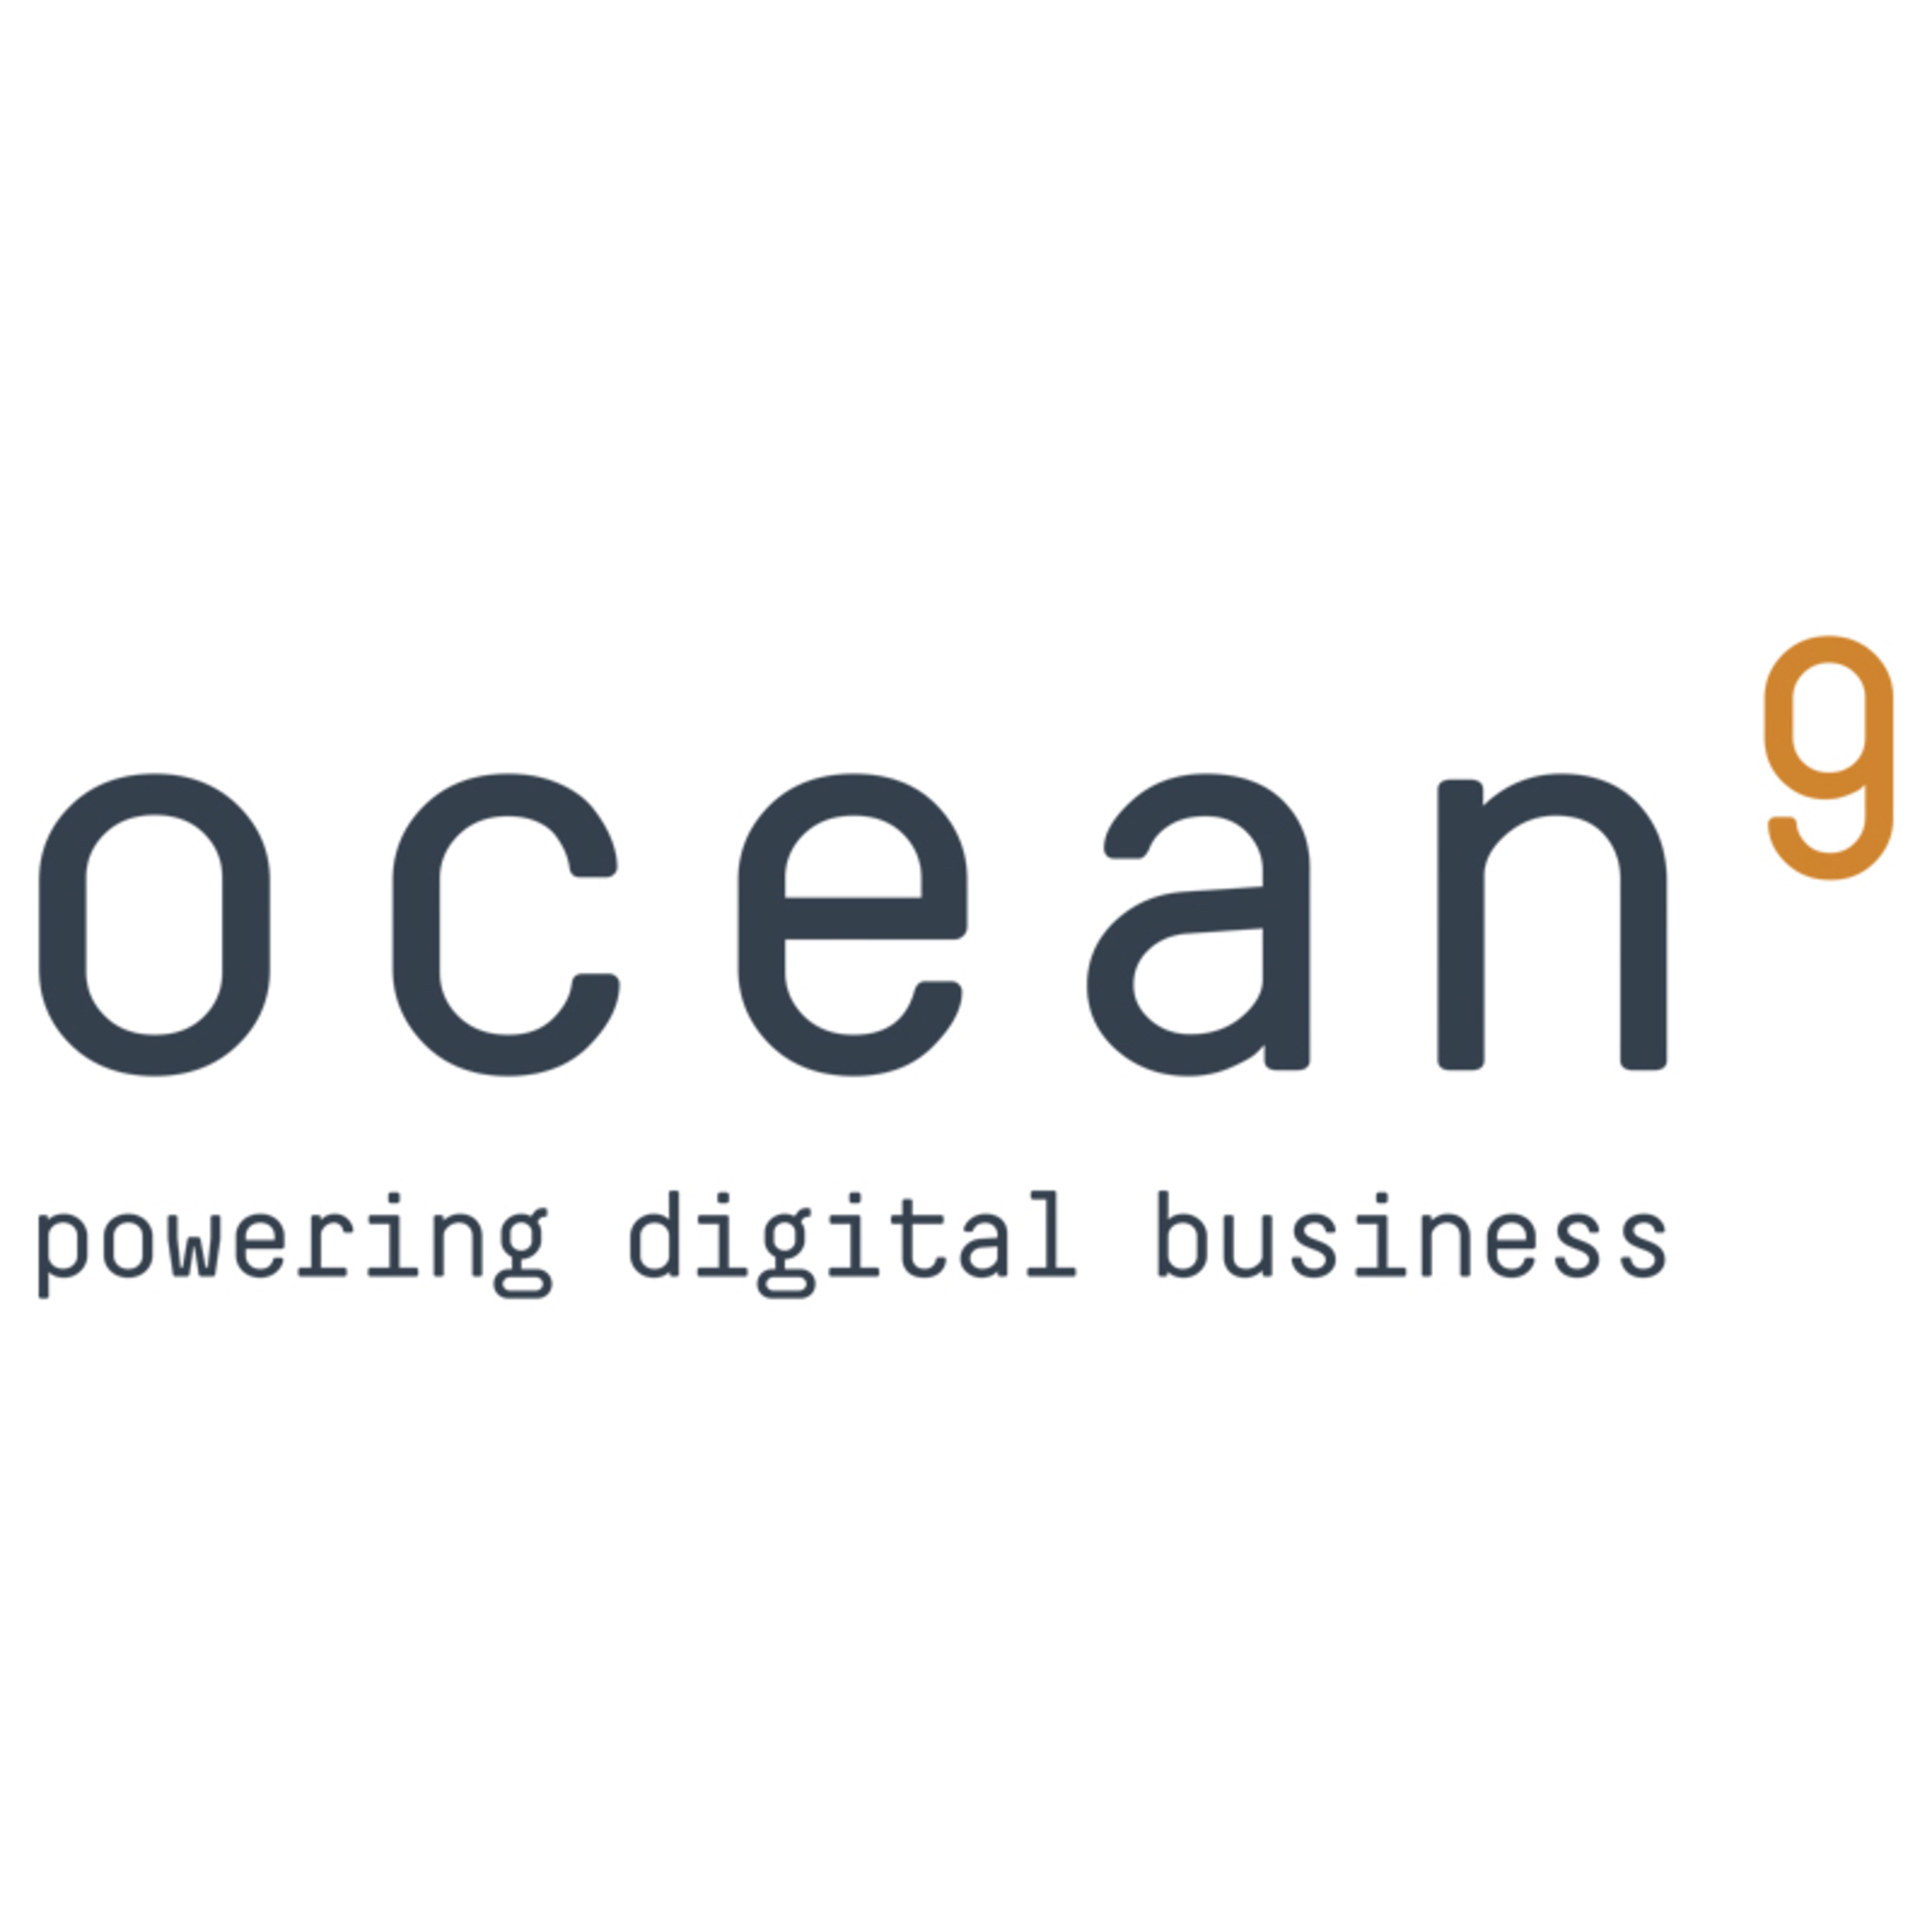 Ocean9 is an innovator in SAP Big Data technologies on AWS, providing the only fully automated SAP HANA managed cloud service for mission critical operations. Founded by a team of industry veterans with deep expertise in SAP HANA, cloud, AWS, and enterprise IT, the Ocean9 managed service helps companies to significantly increase business agility, reduce deployment risk and control cost. Please visit our website at www.ocean9.io to find out more about Ocean9 and its innovative solutions.